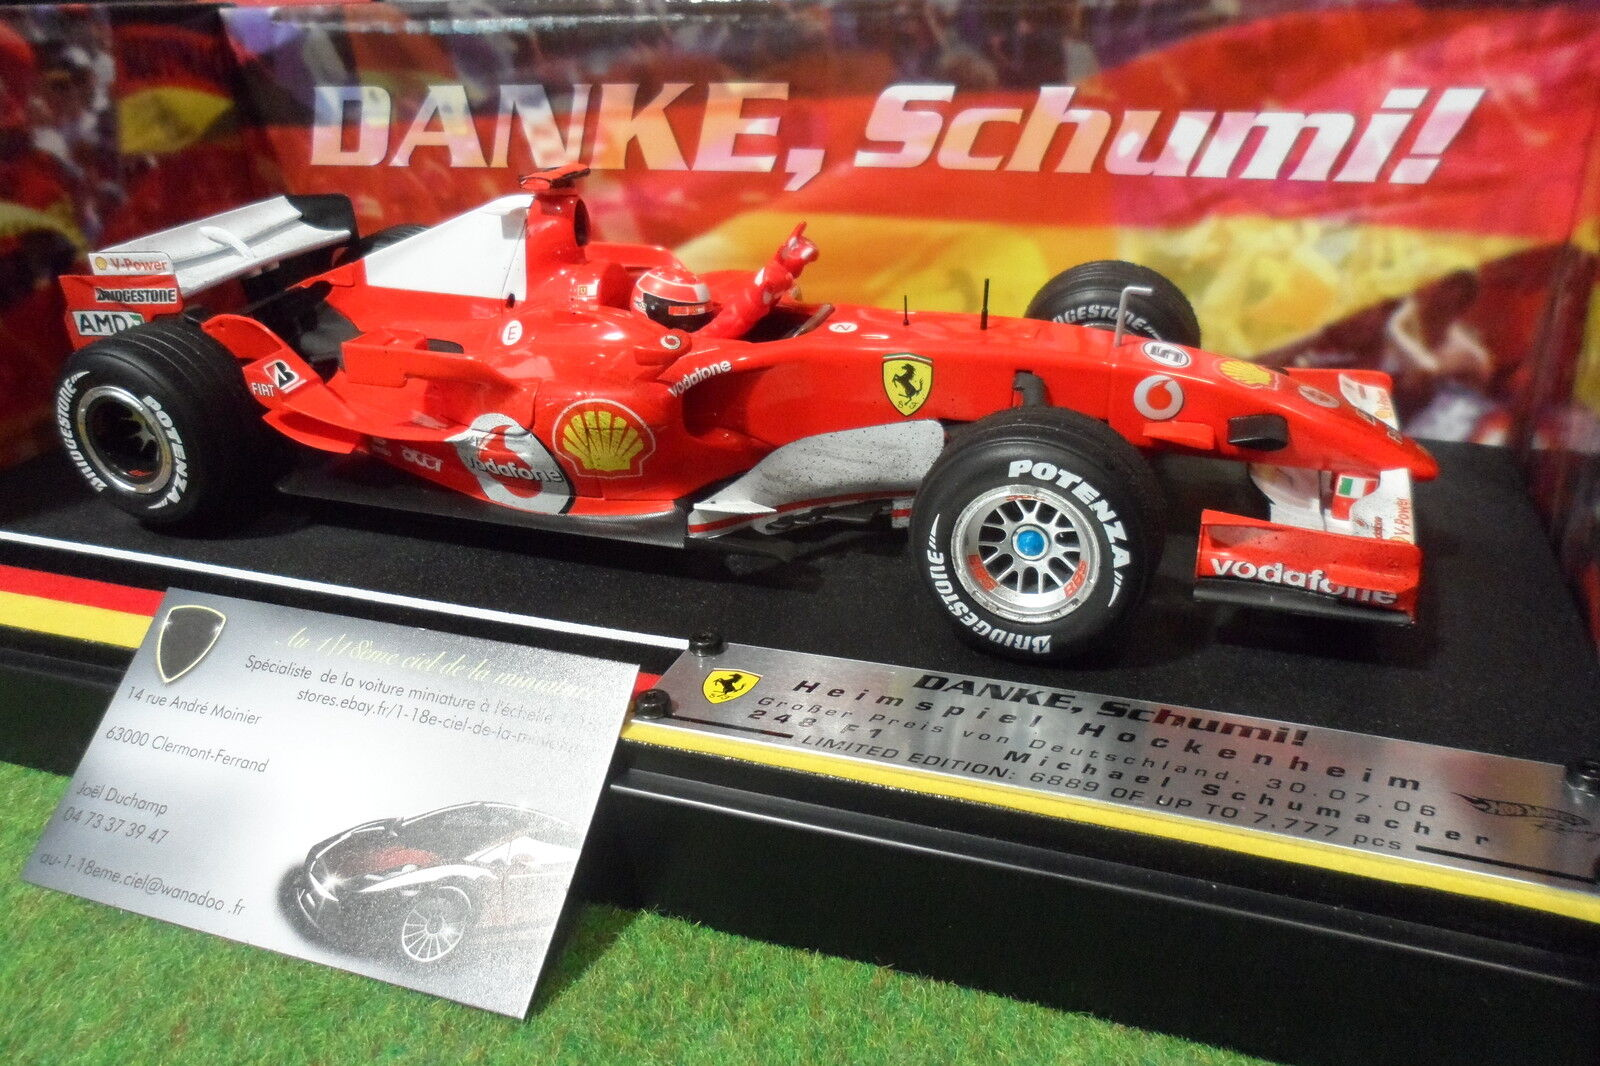 migliore vendita FERRARI 248 248 248 F1 2006 SCHUMACHER  5 GP DEUTSCHLe 1 18 caliente ruedaS J2993 formule 1  colorways incredibili